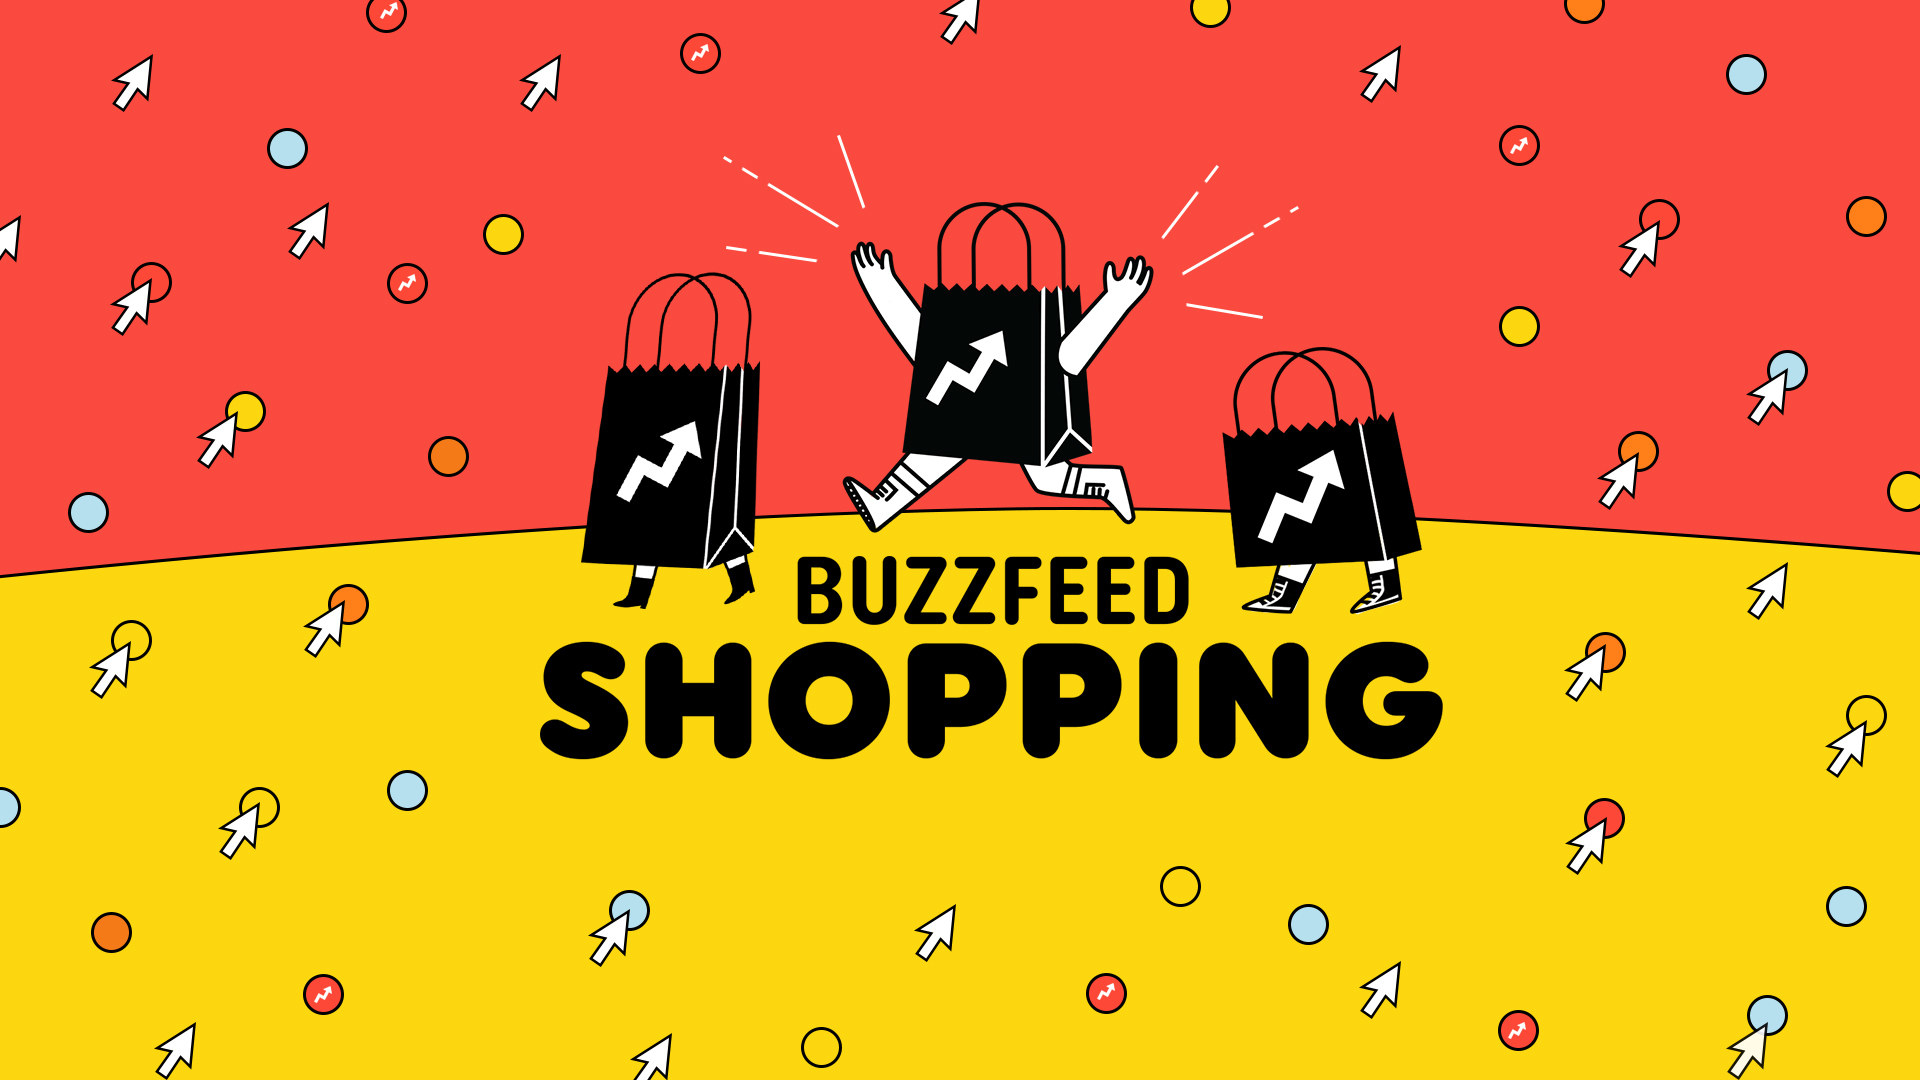 A red and yellow graphic with three shopping bags with feet and the BuzzFeed logo on them